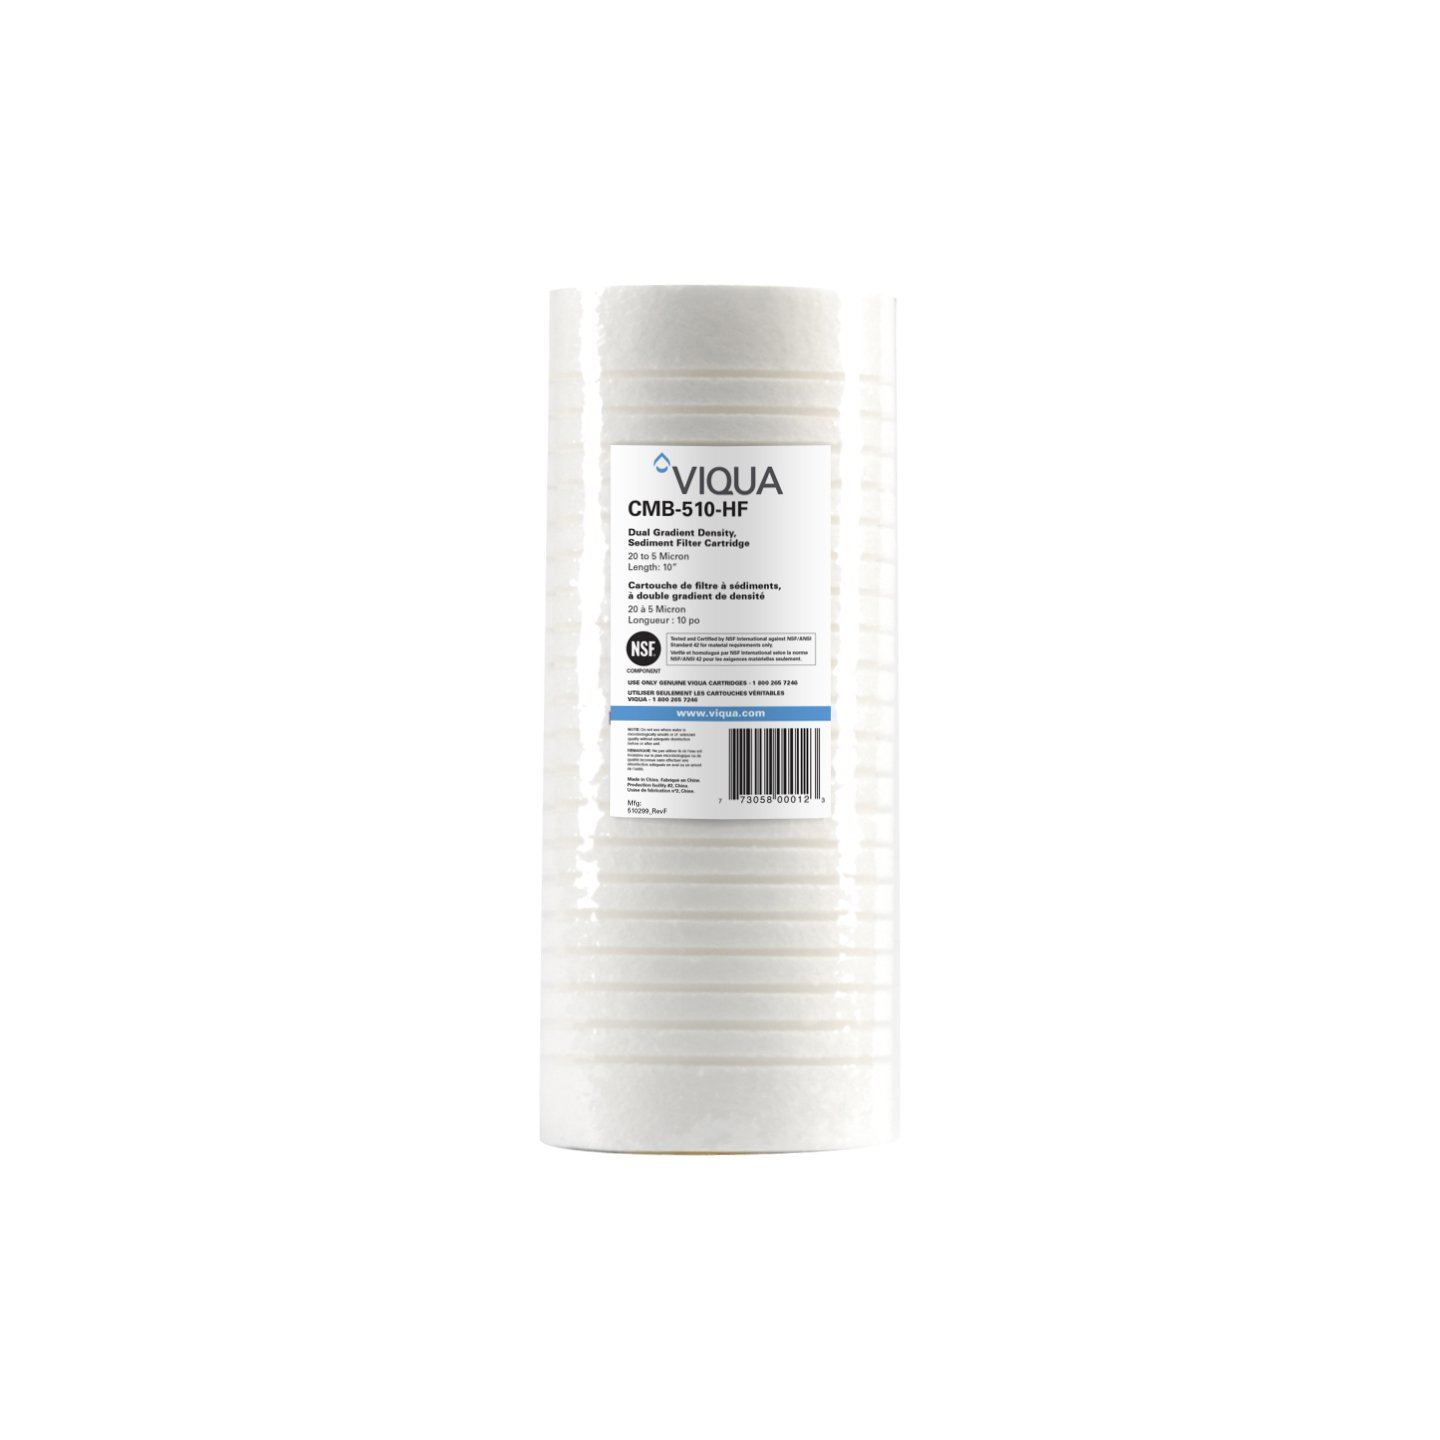 Viqua CMB-510-HF 10 x 4.5 Inch 5 Micron Polypropylene Whole House Filter For The IHS12-D4 UV System